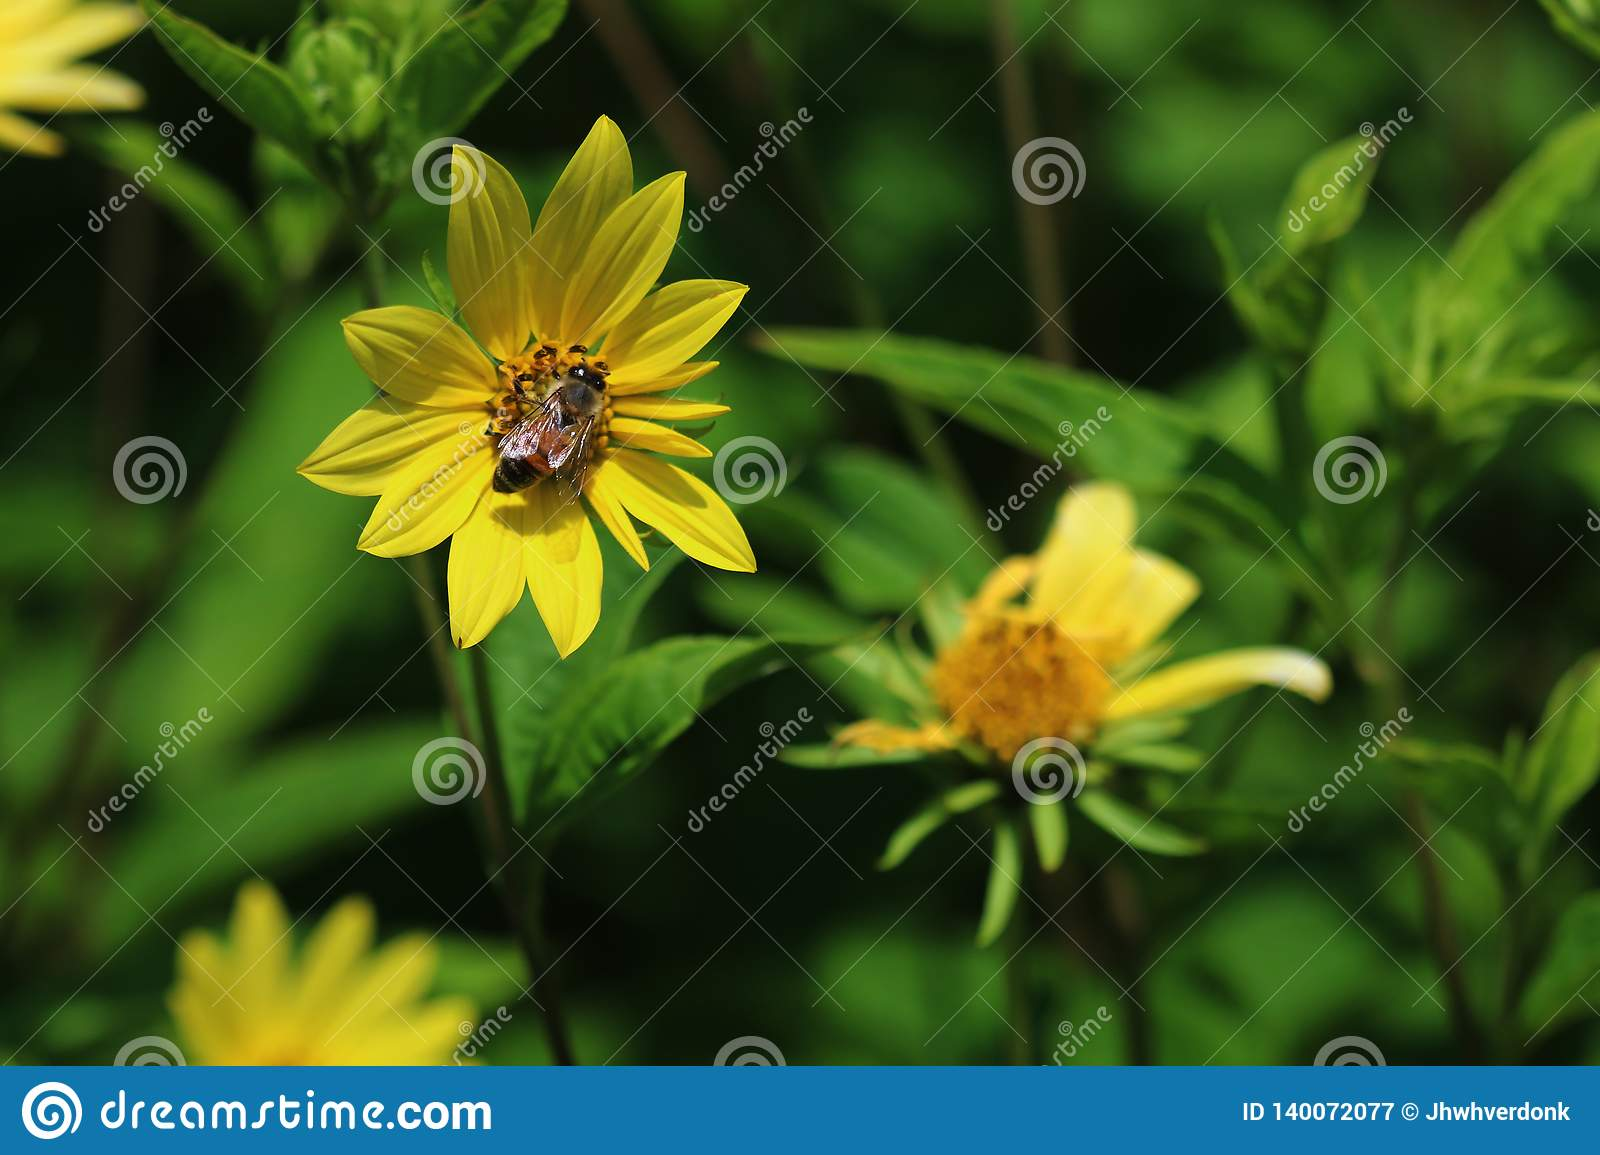 A closeup of a bee pollinating a yellow flower with space for text but also a green, natural background